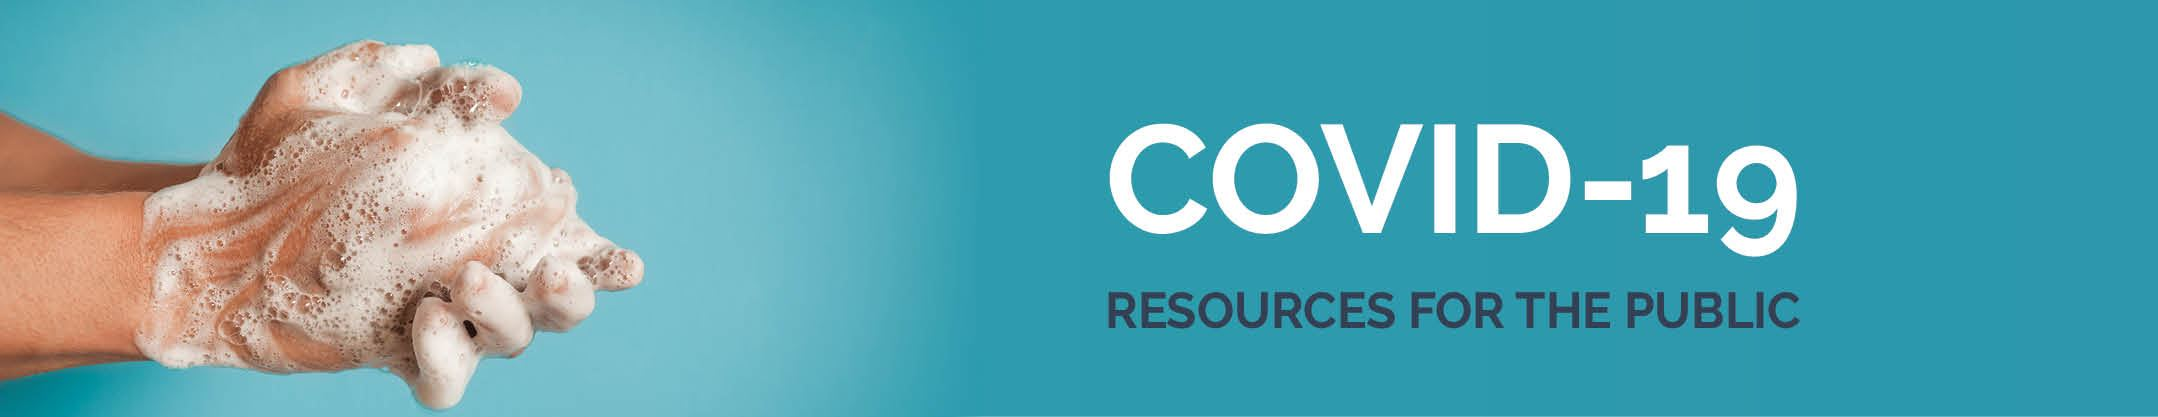 Covid resources banner